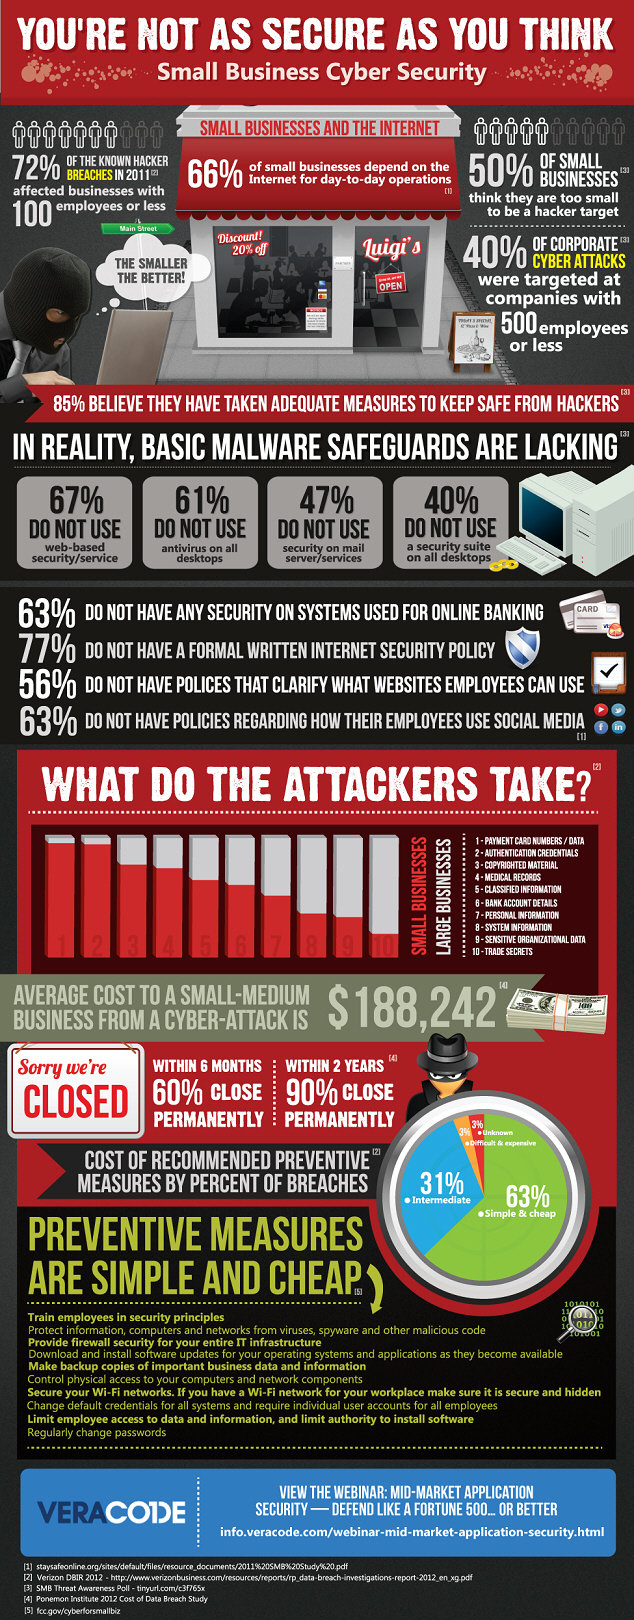 you're not as secure as you think #infographic